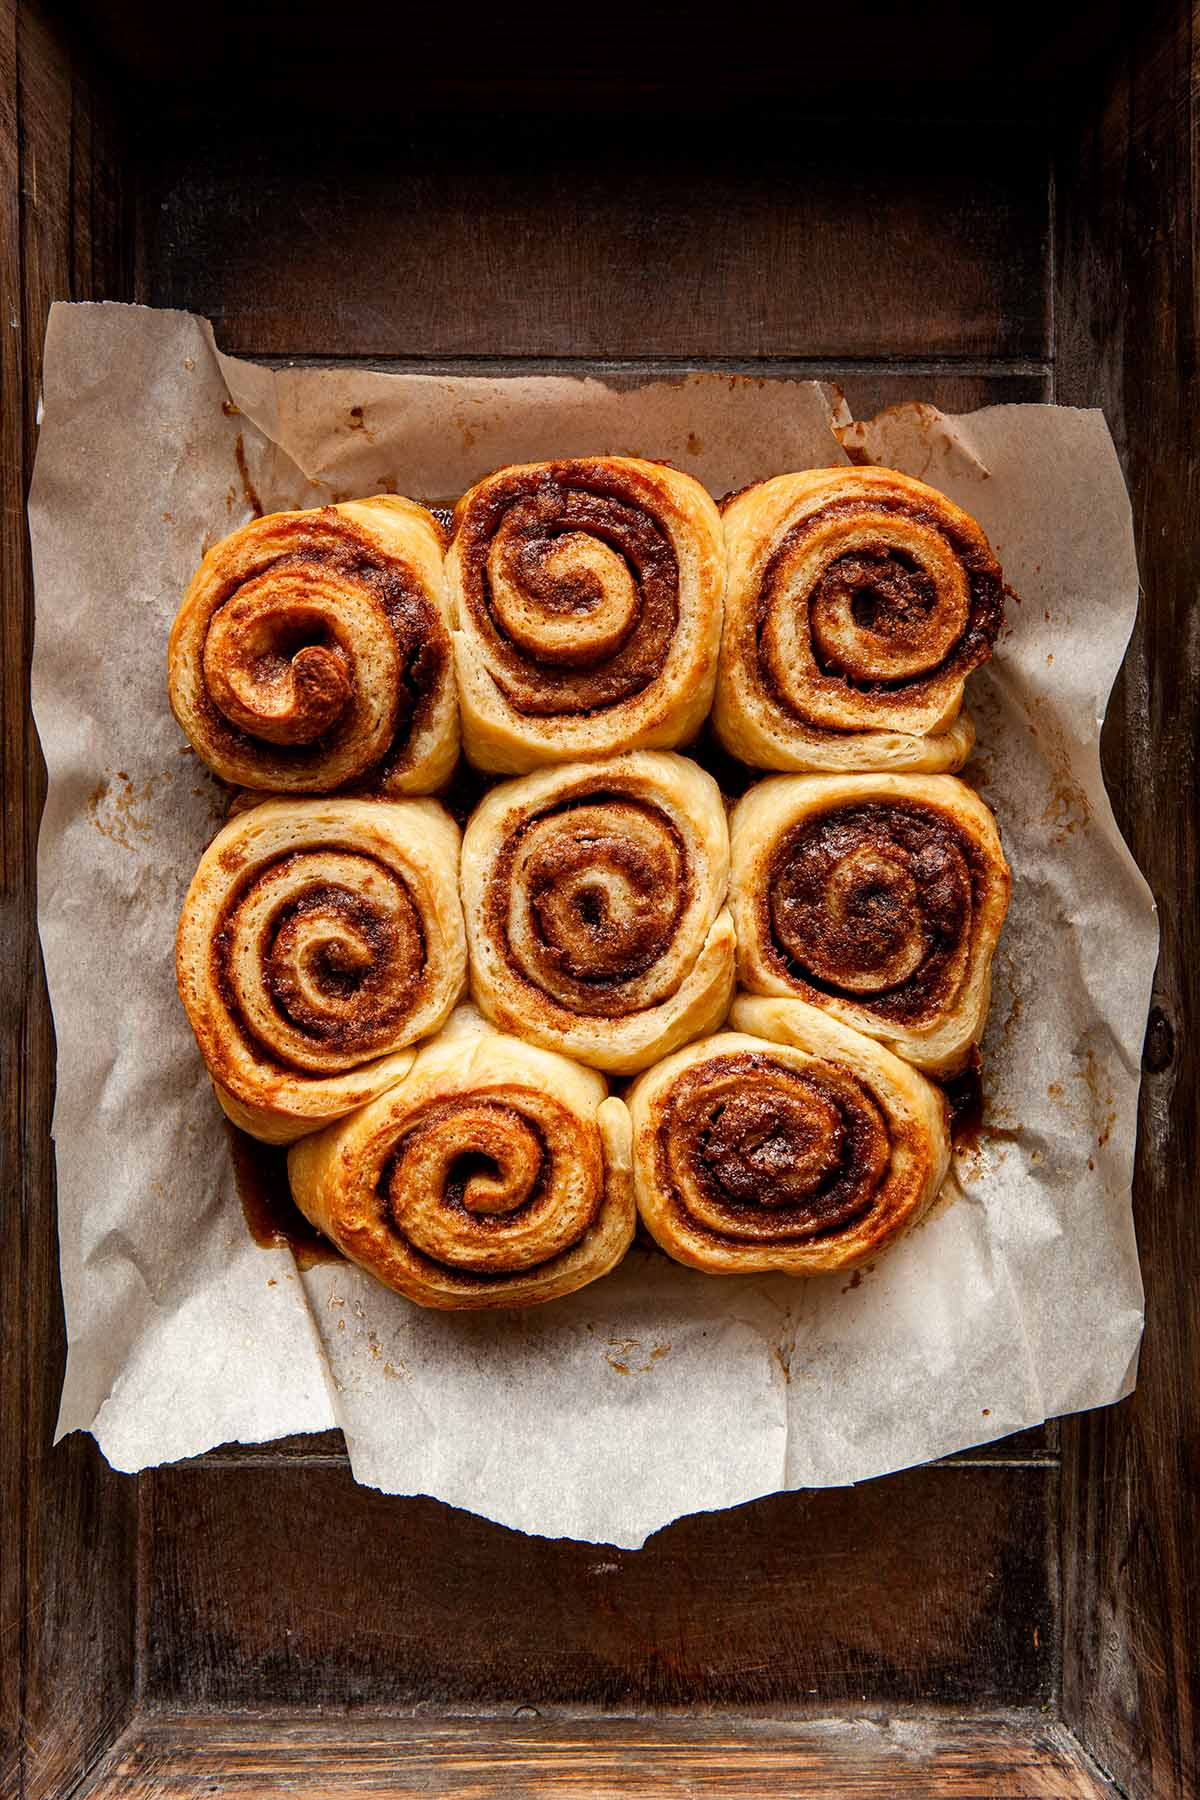 Small batch cinnamon rolls nestled together on the parchment paper they baked on, inside a wooden tray.